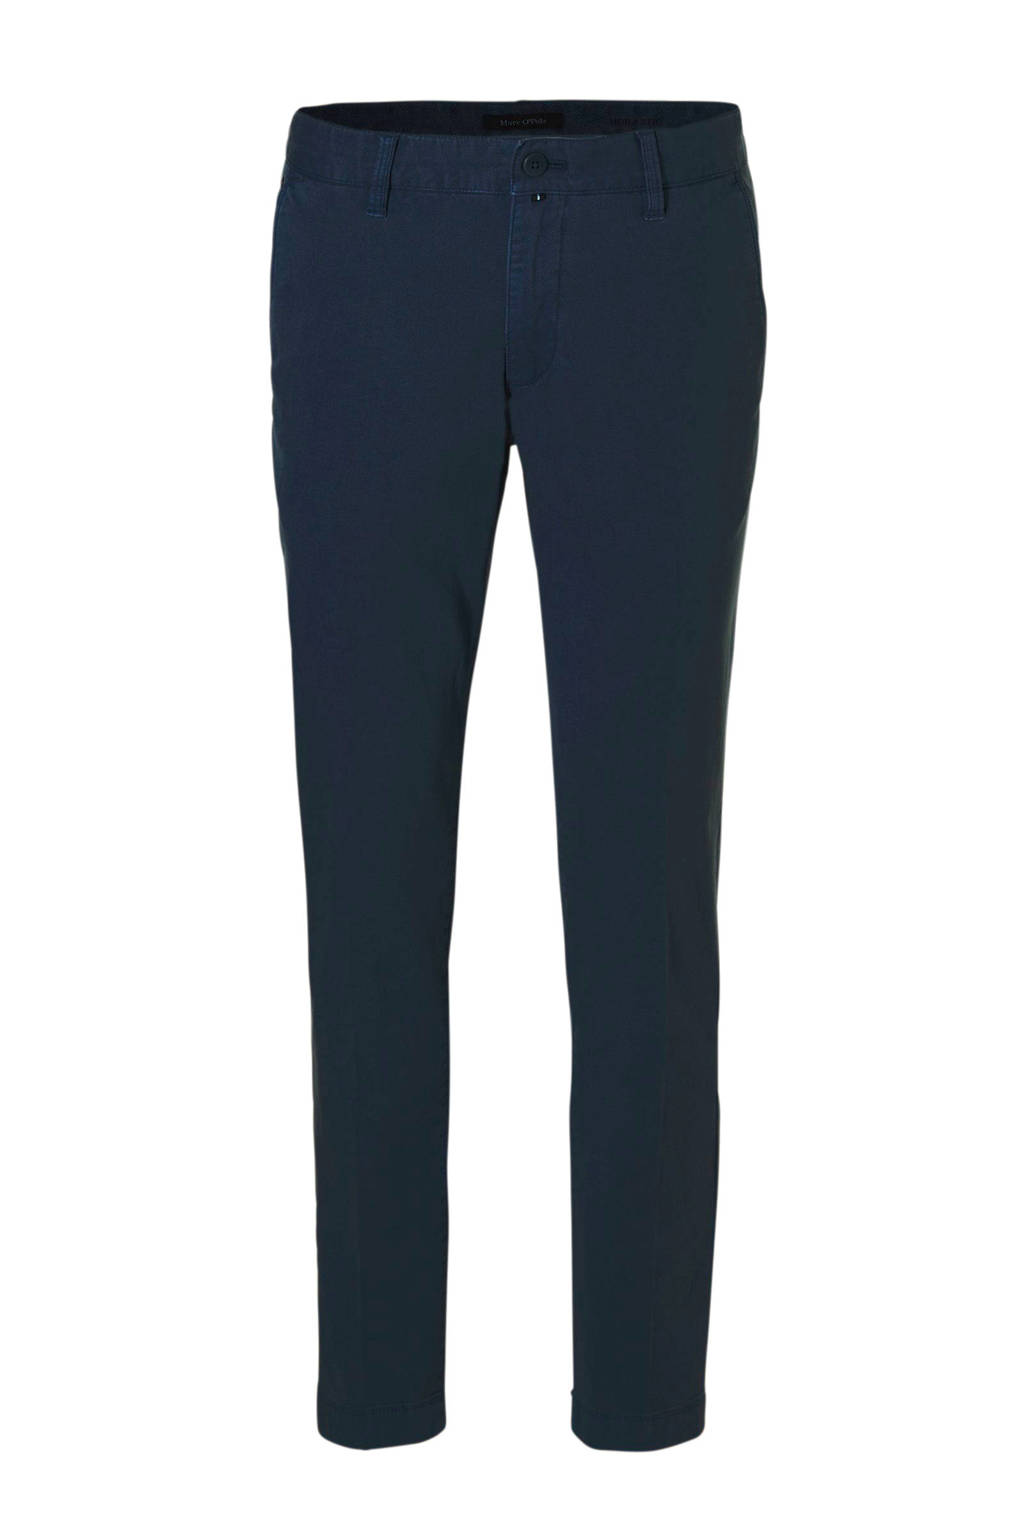 Marc O'Polo tapered fit chino Stig, Donkerblauw